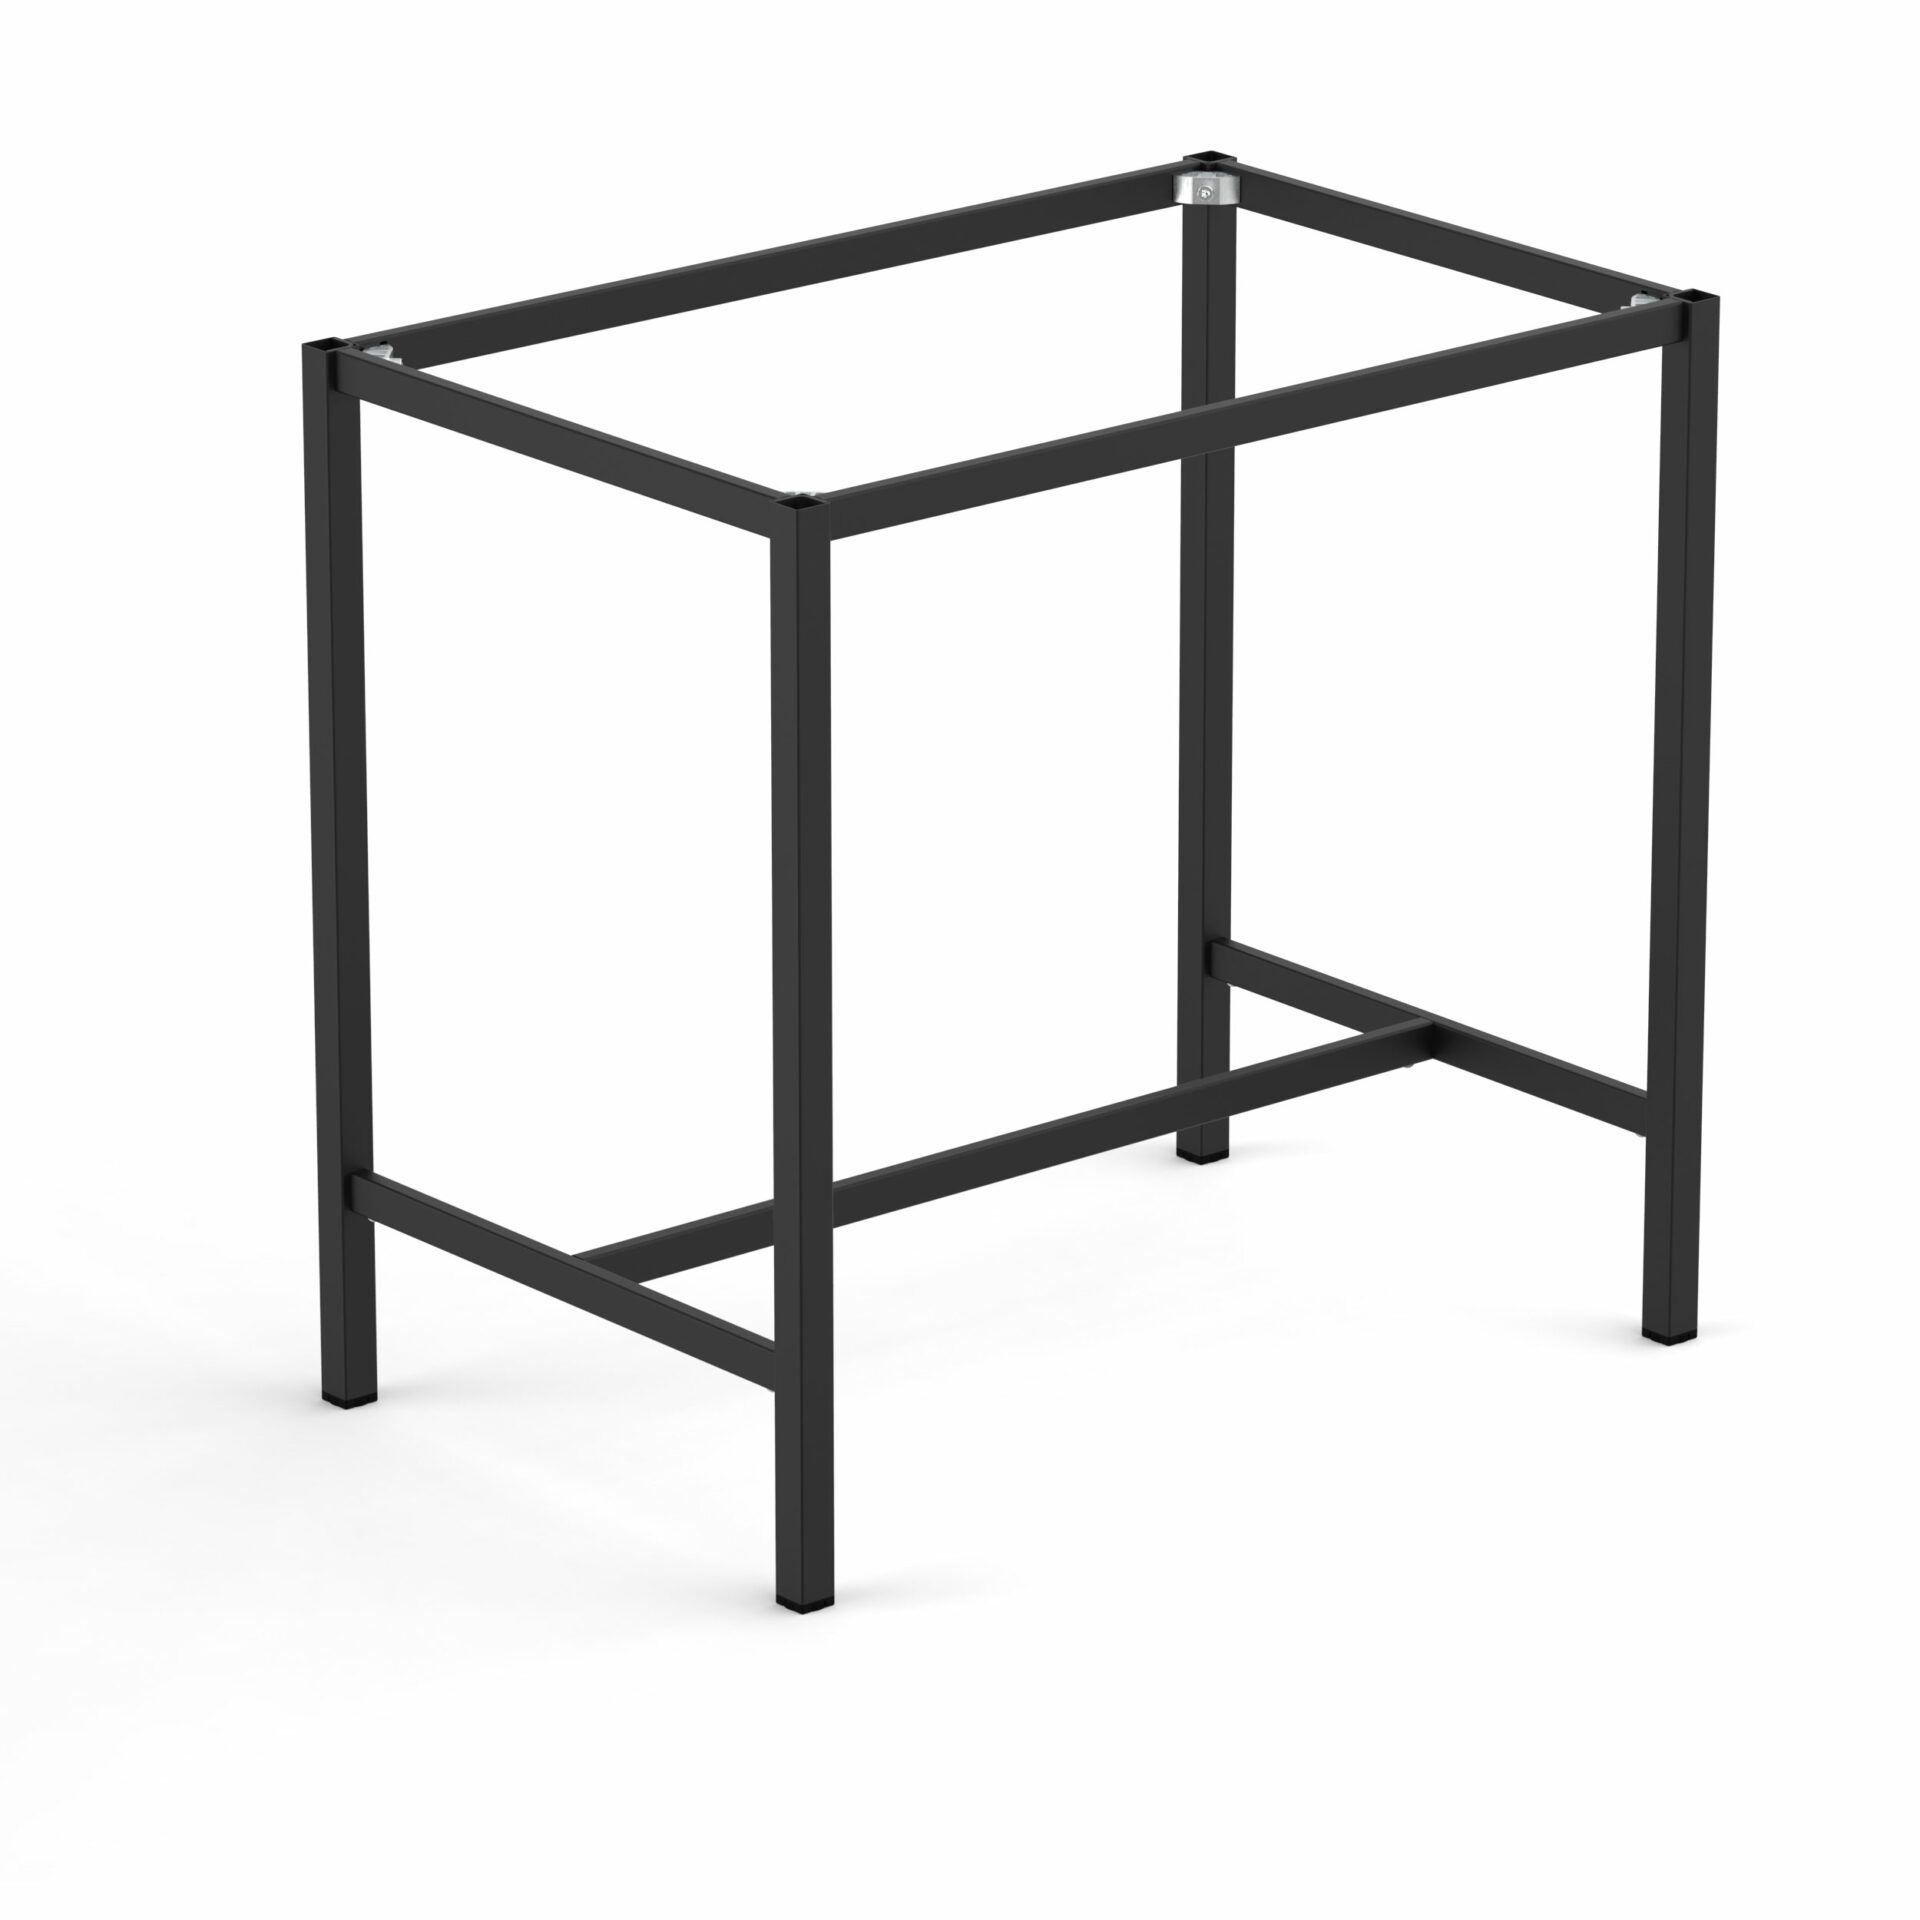 Spire Square Leg 1050 Bar Height Frame